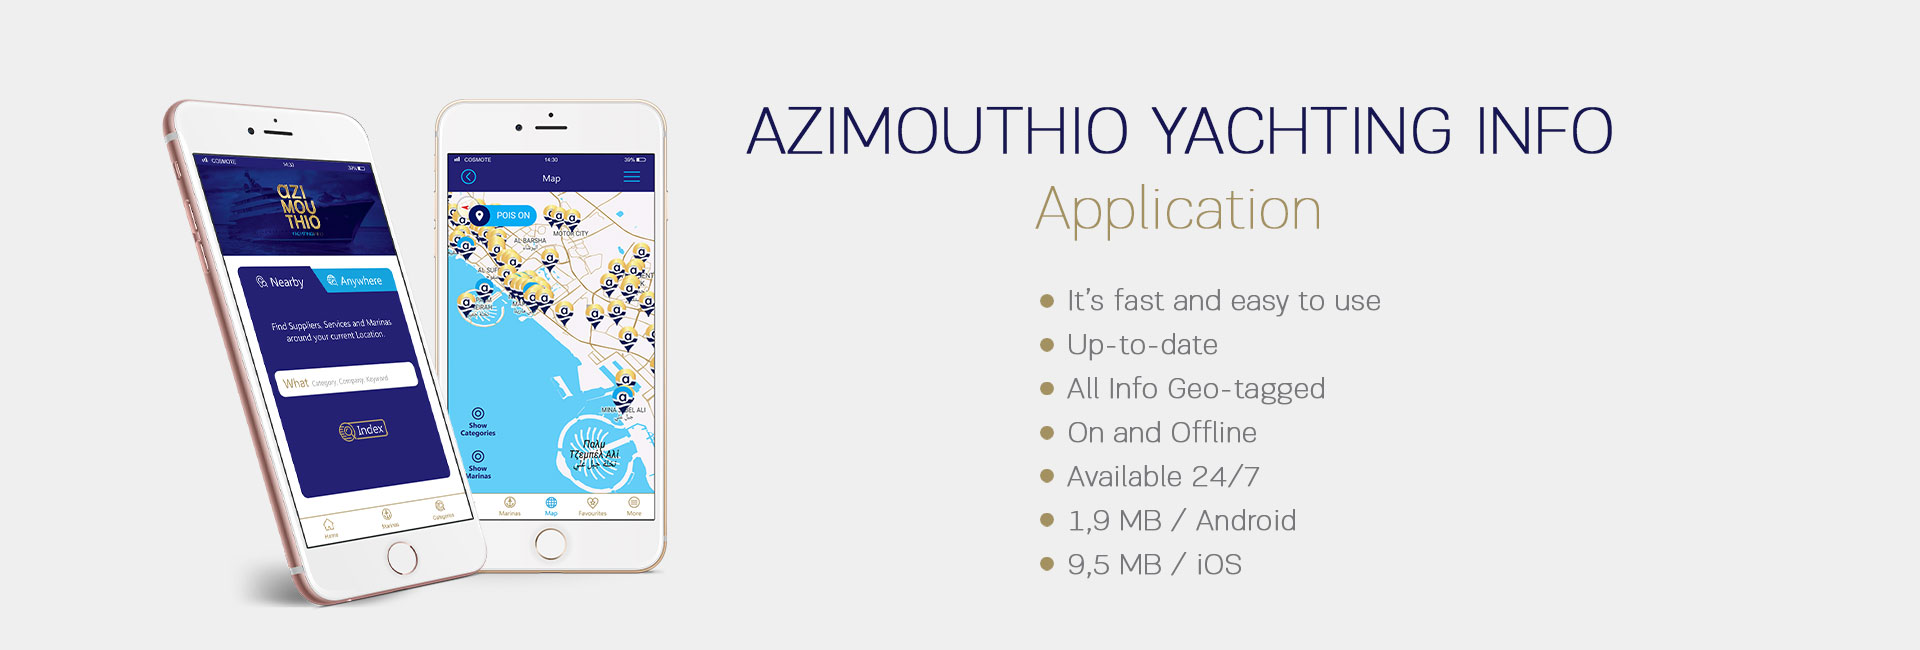 Azimouthio Yachting Info mobile application top cover